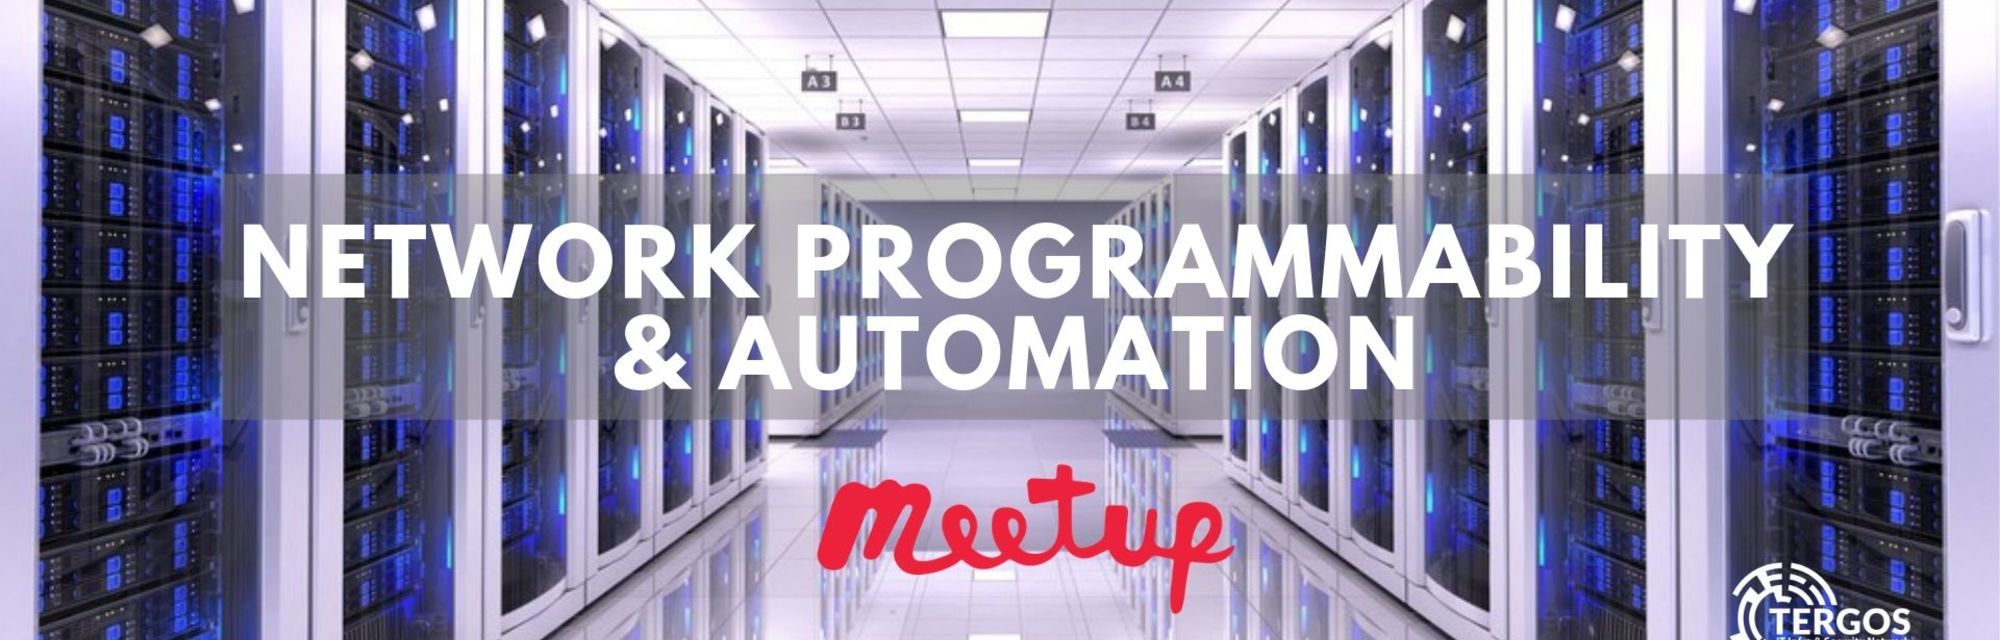 IT network & automation Meetup